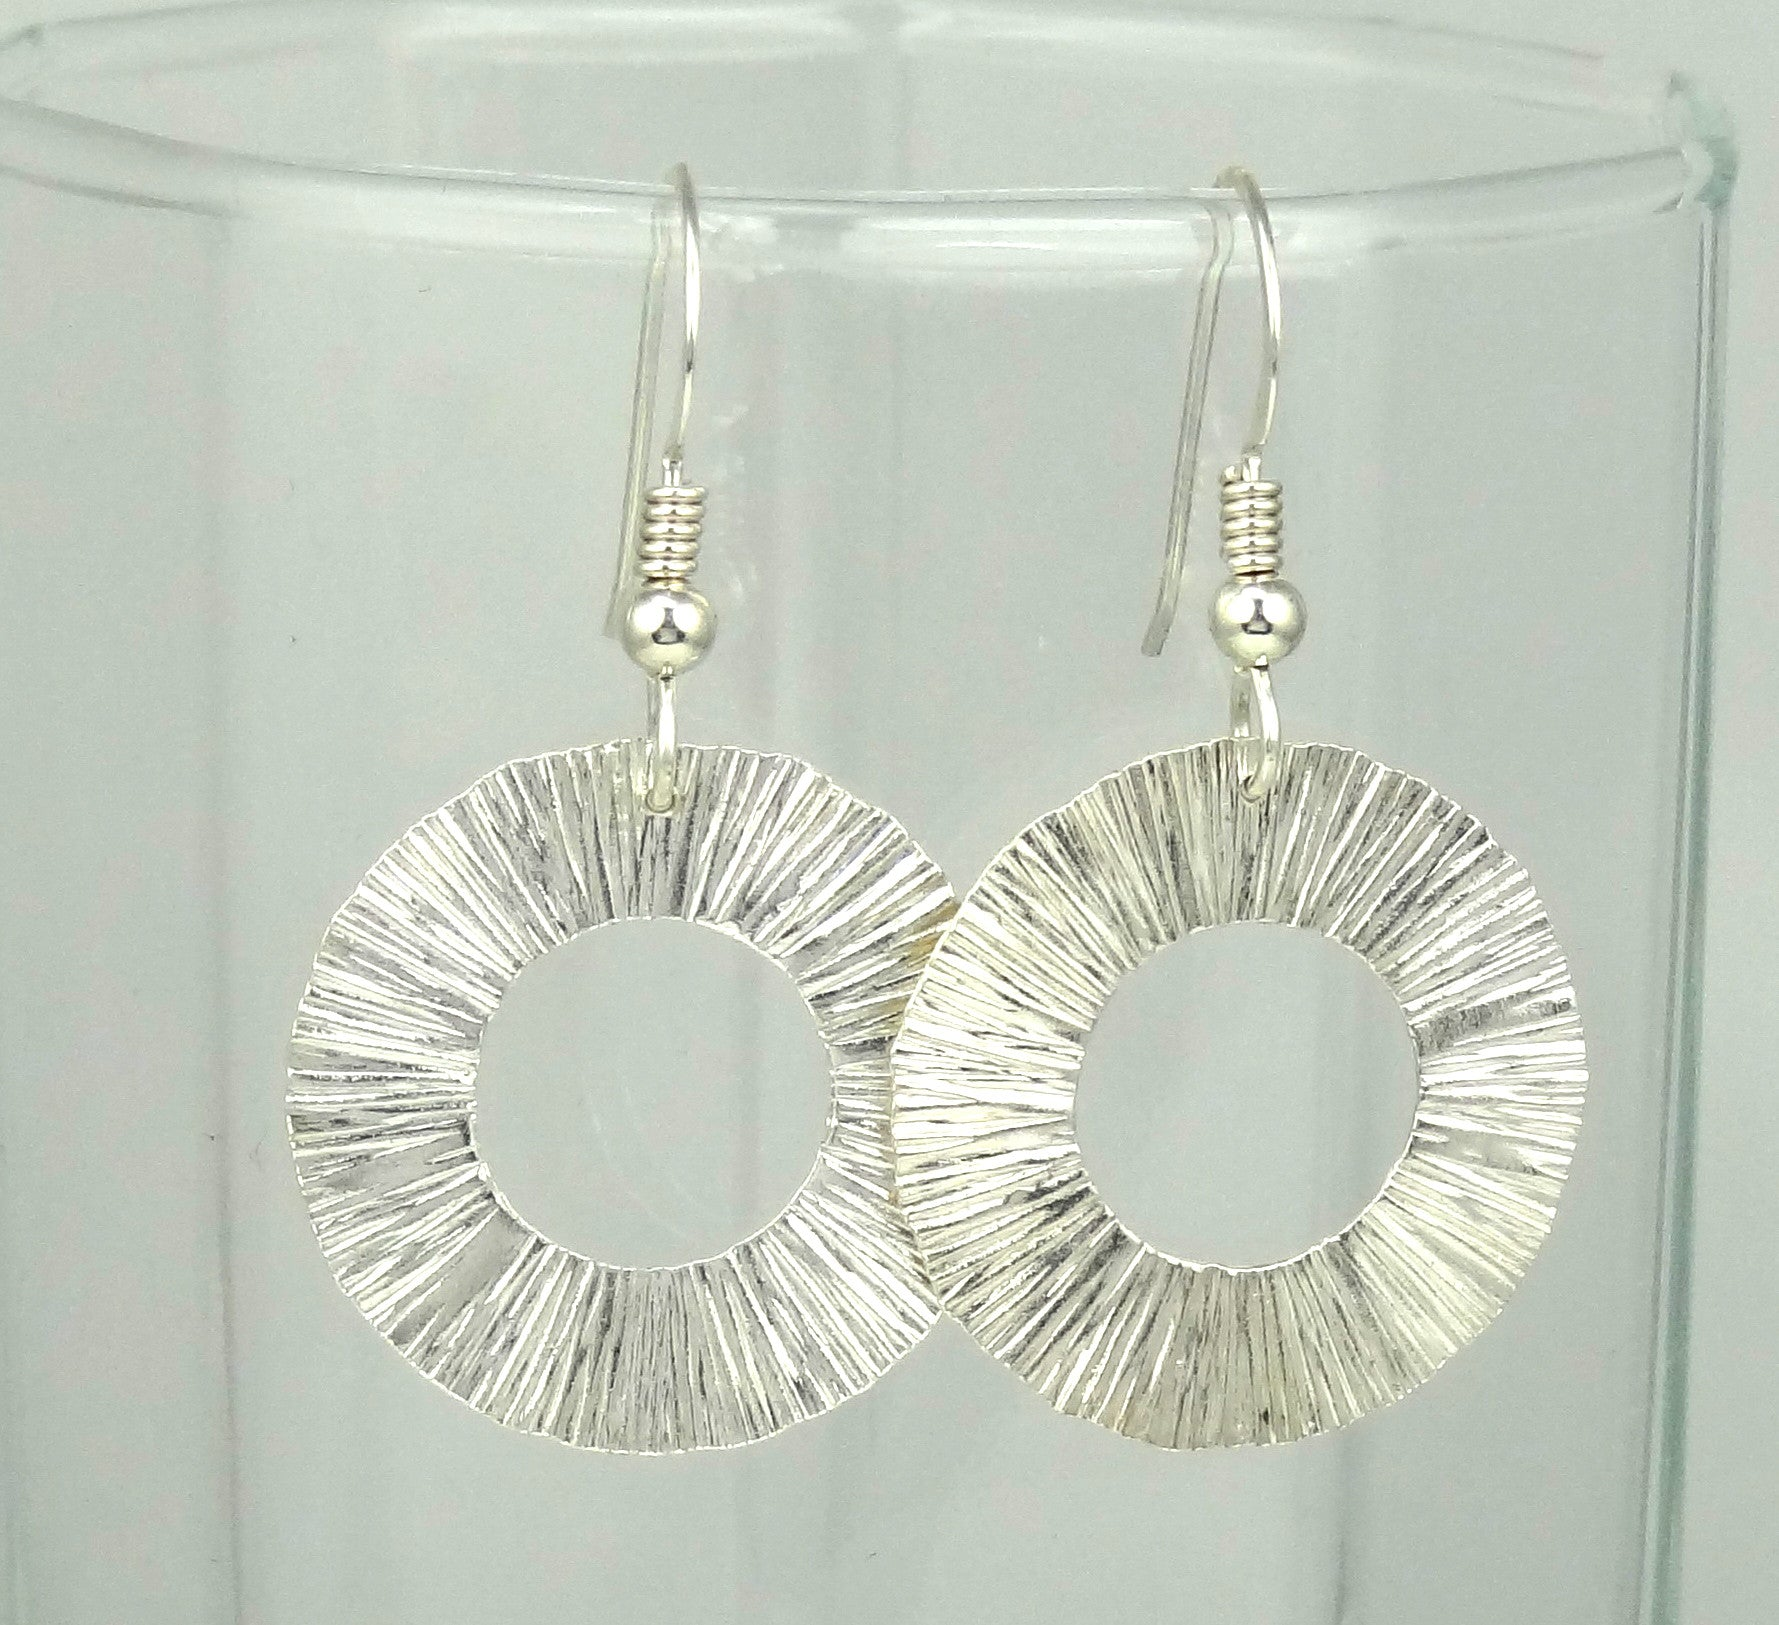 Textured Starburst Sterling Silver Ring Earrings